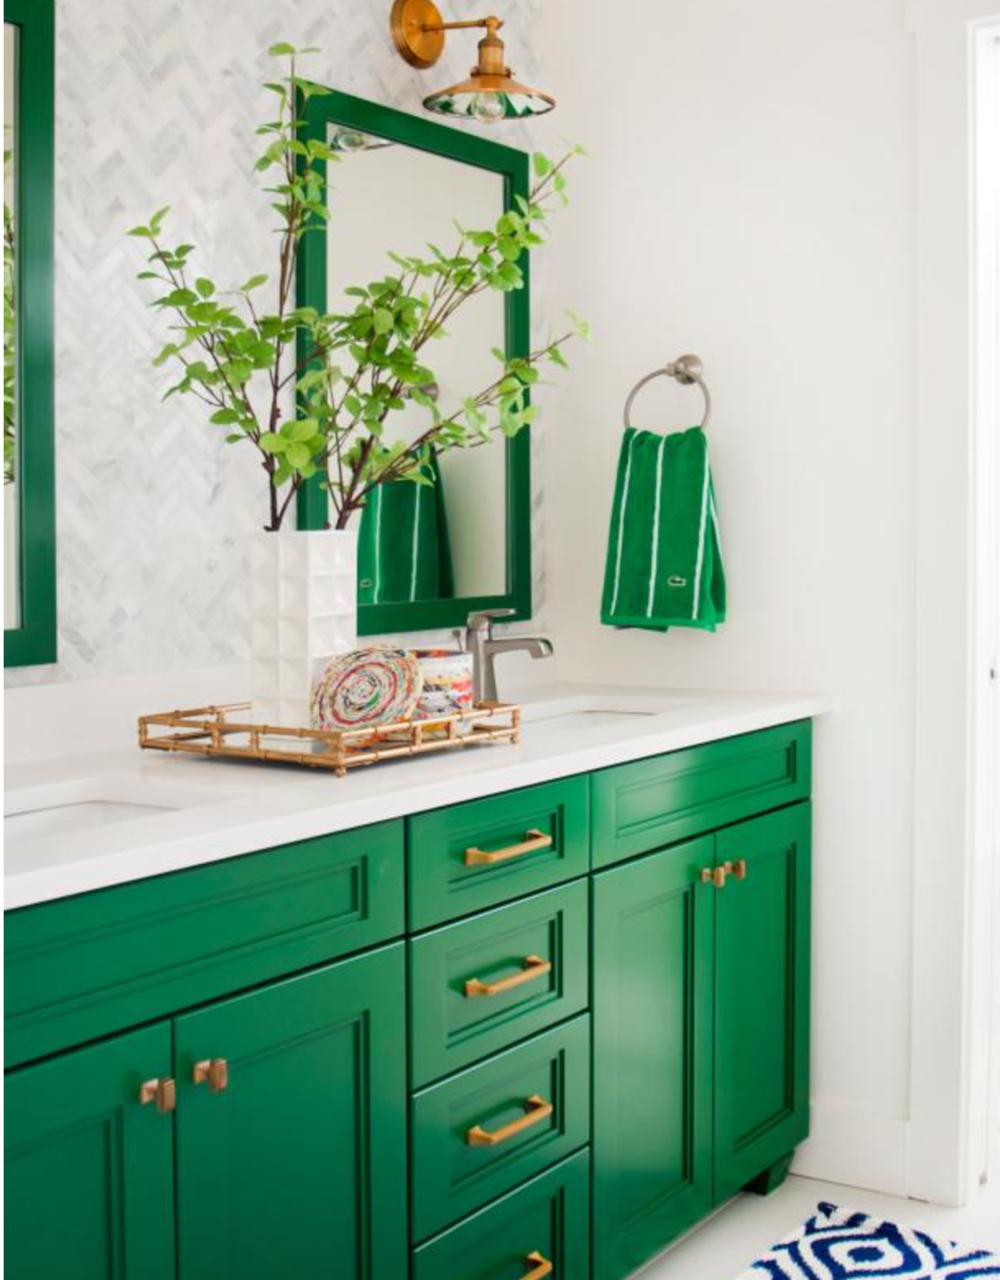 Having a green moment lately- and this (spotted on HGTV's website), in a high gloss finish, could be so cool. Yes, kind of random as we have no green anywhere else in our house, but still, a girl can dream...